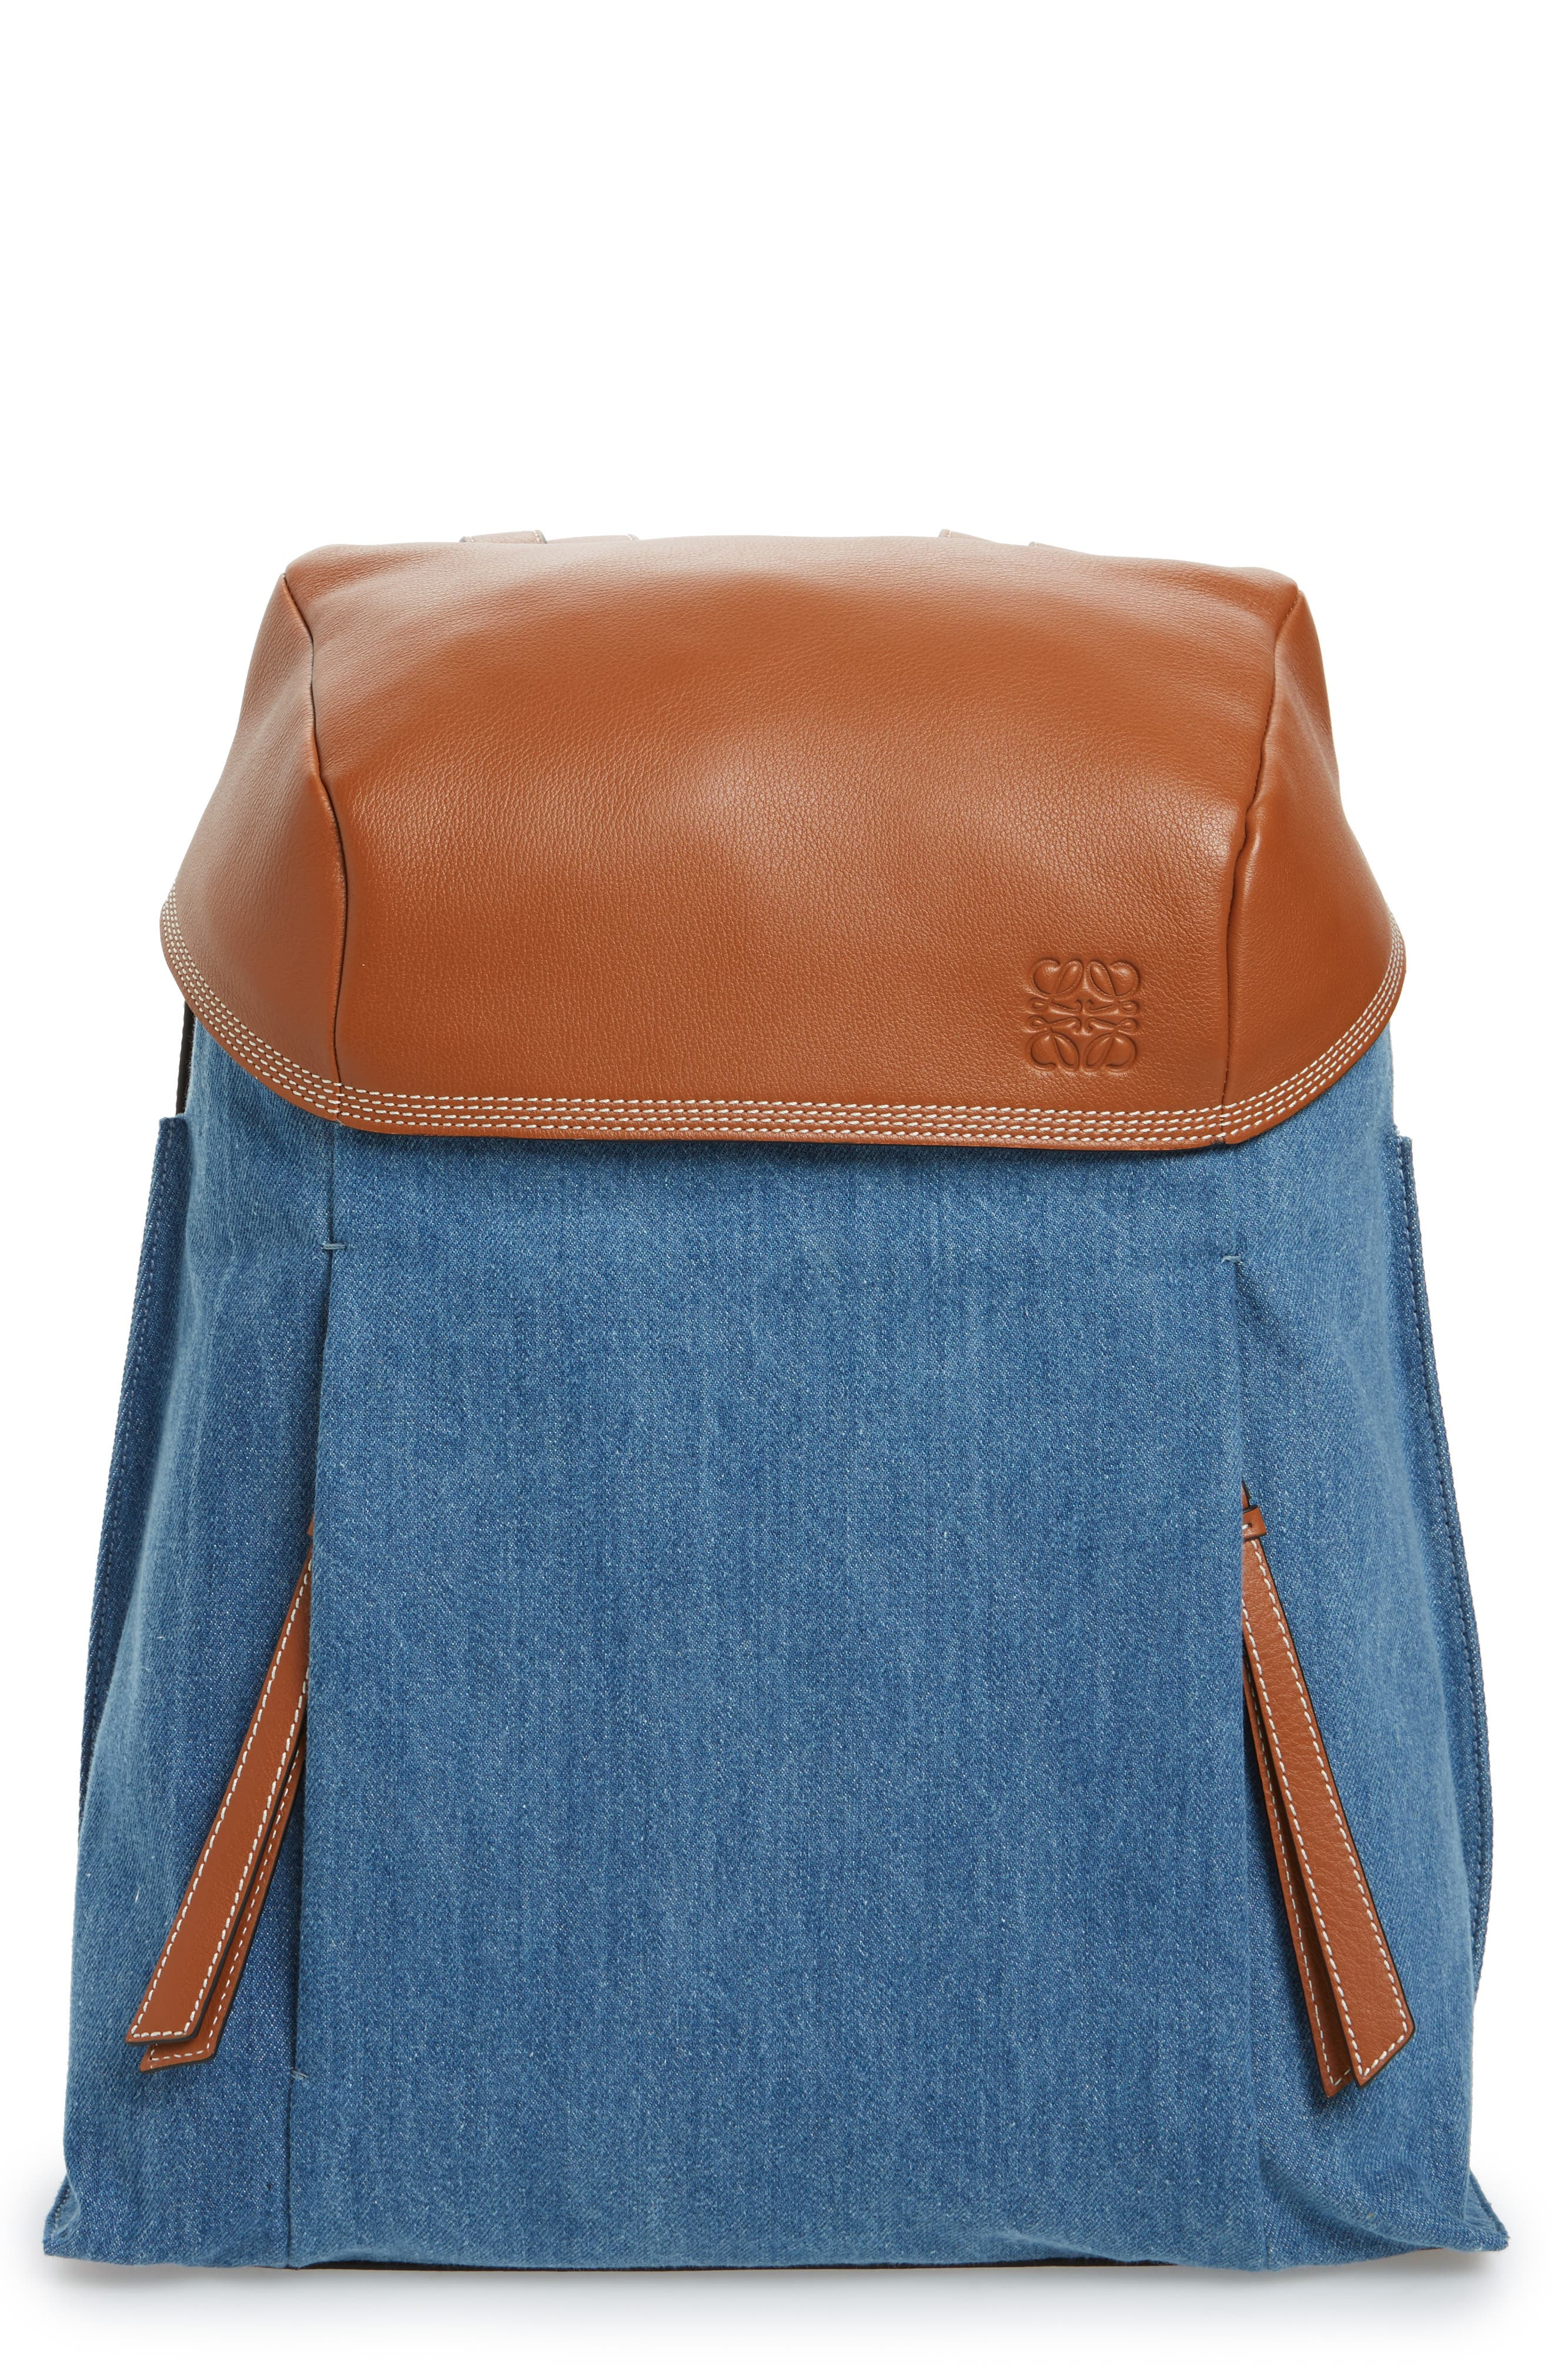 Alternate Image 1 Selected - Loewe T Small Denim & Leather Backpack